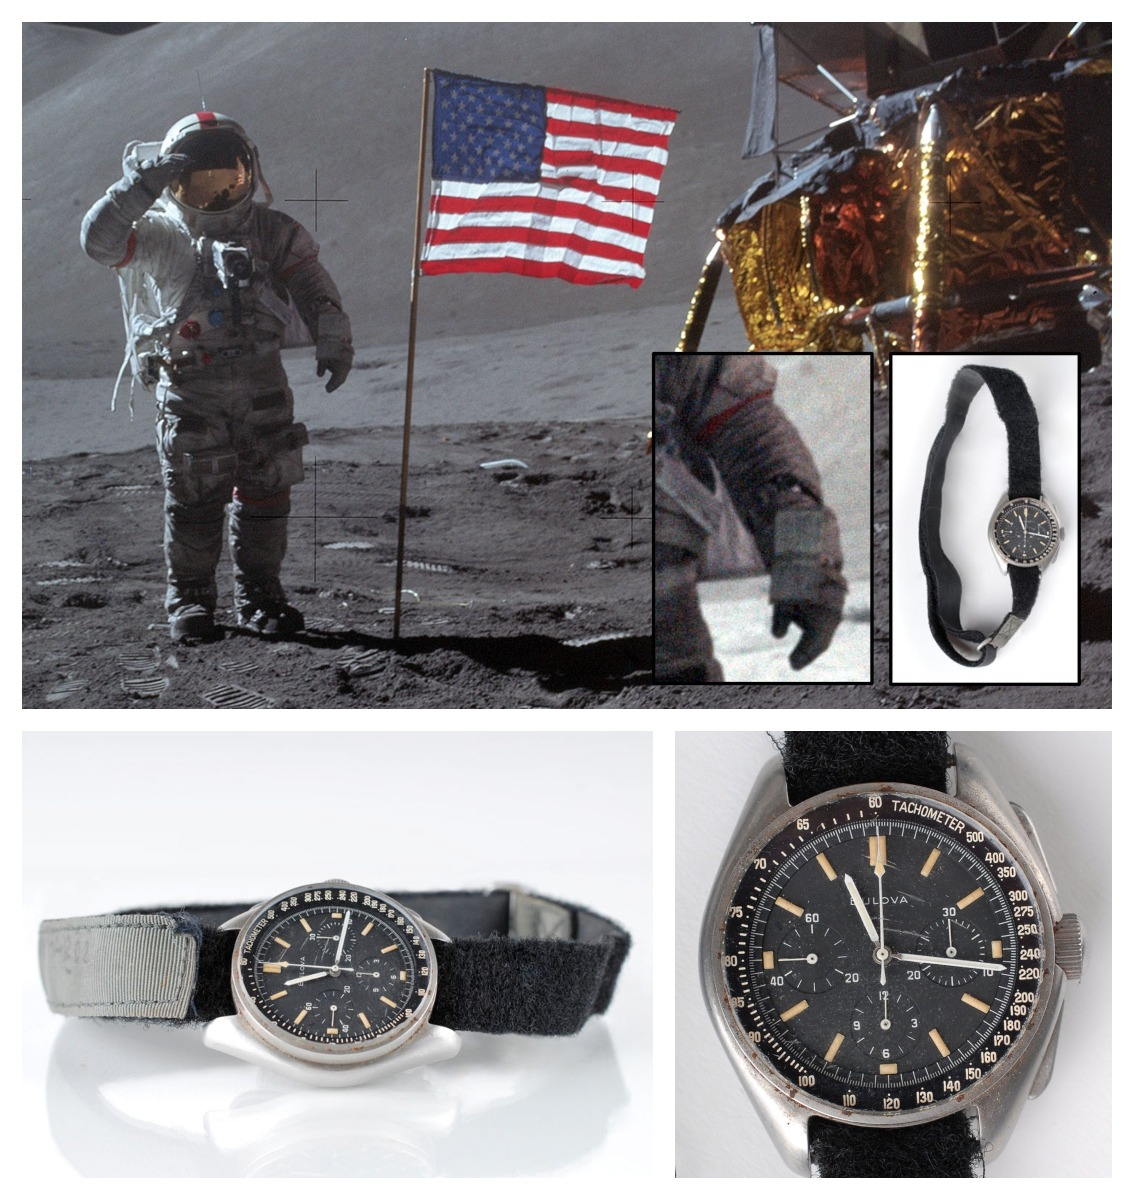 Scott wearing the Bulova chronograph while walking on the Moon and pictures of his watch sold for auction. Credits : NASA, RR Auctions.